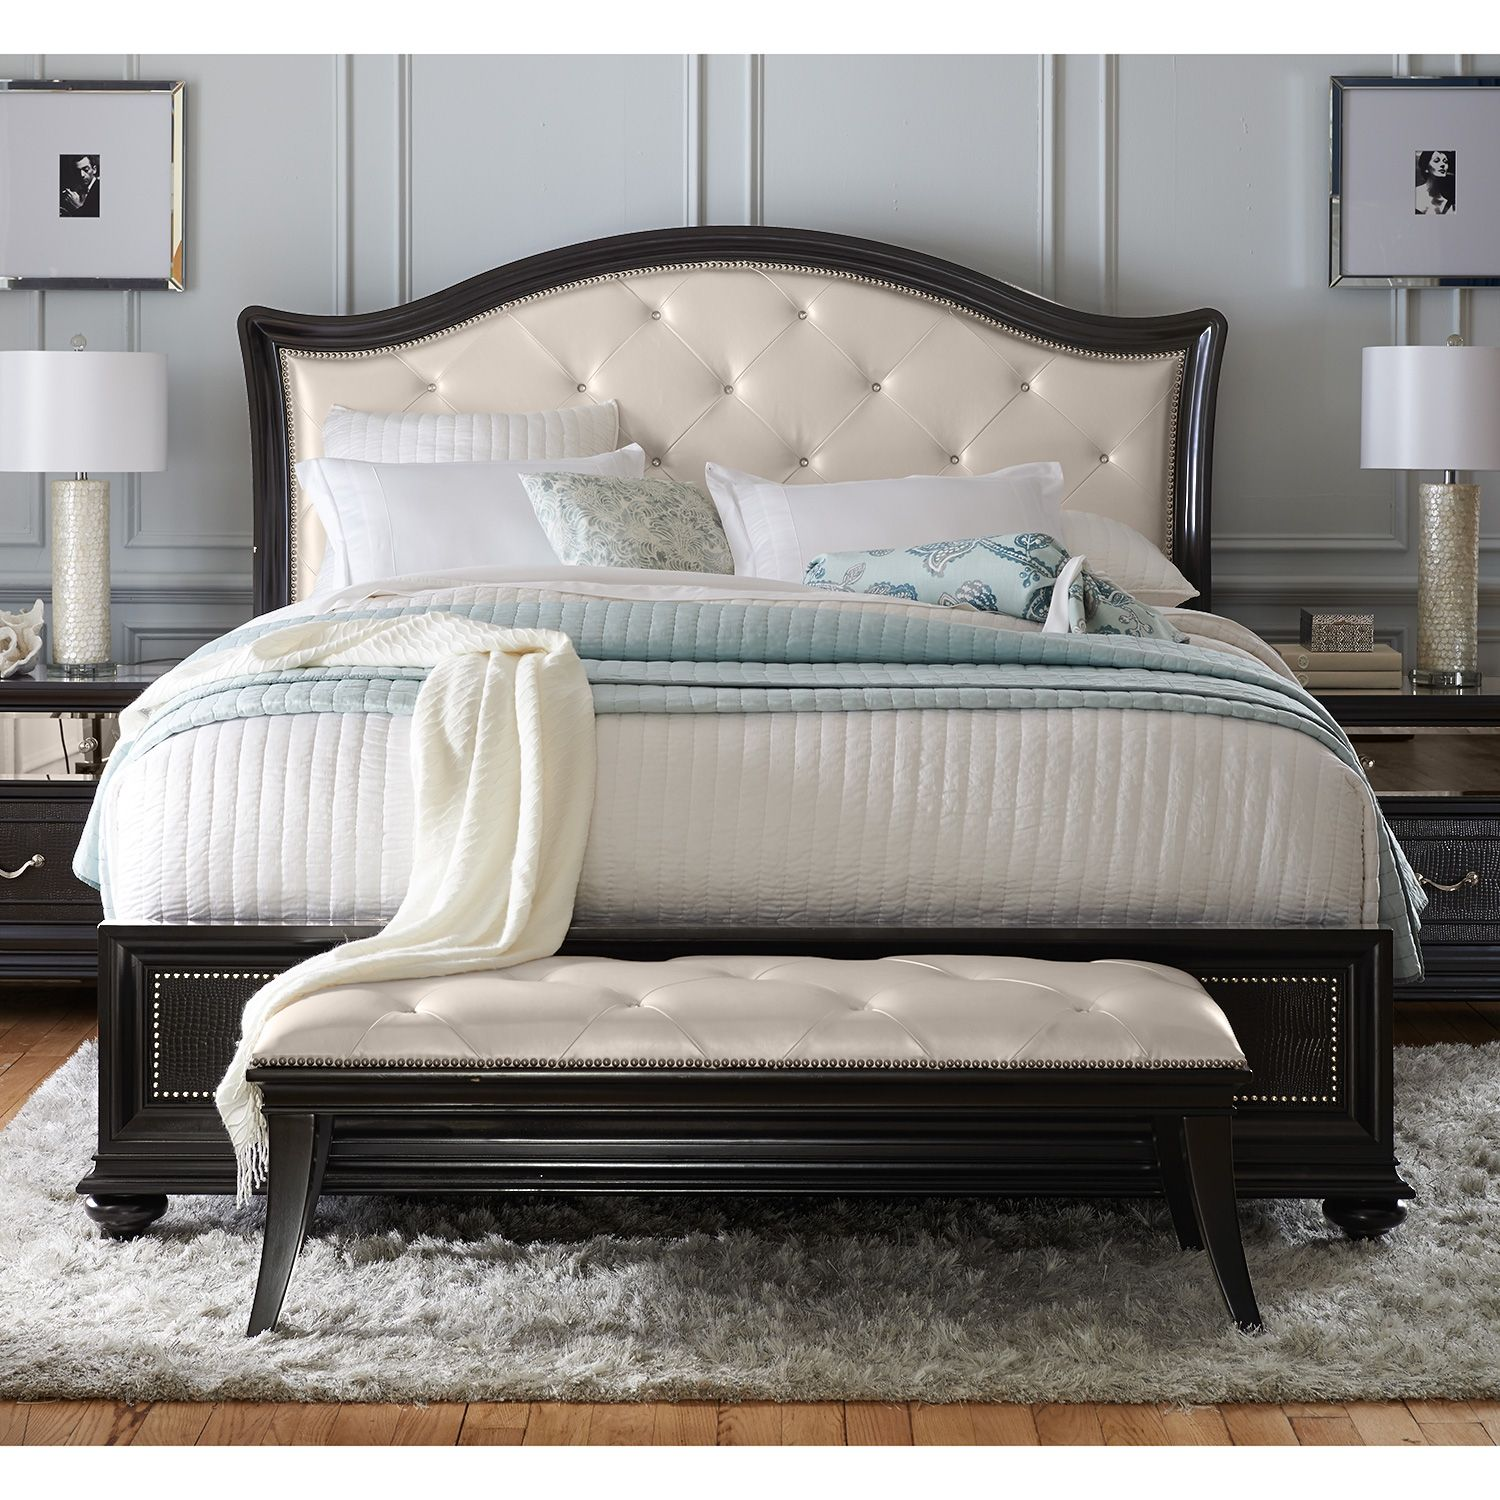 Marilyn Queen Bed American Signature Furniture My House Pinterest Queen Beds City